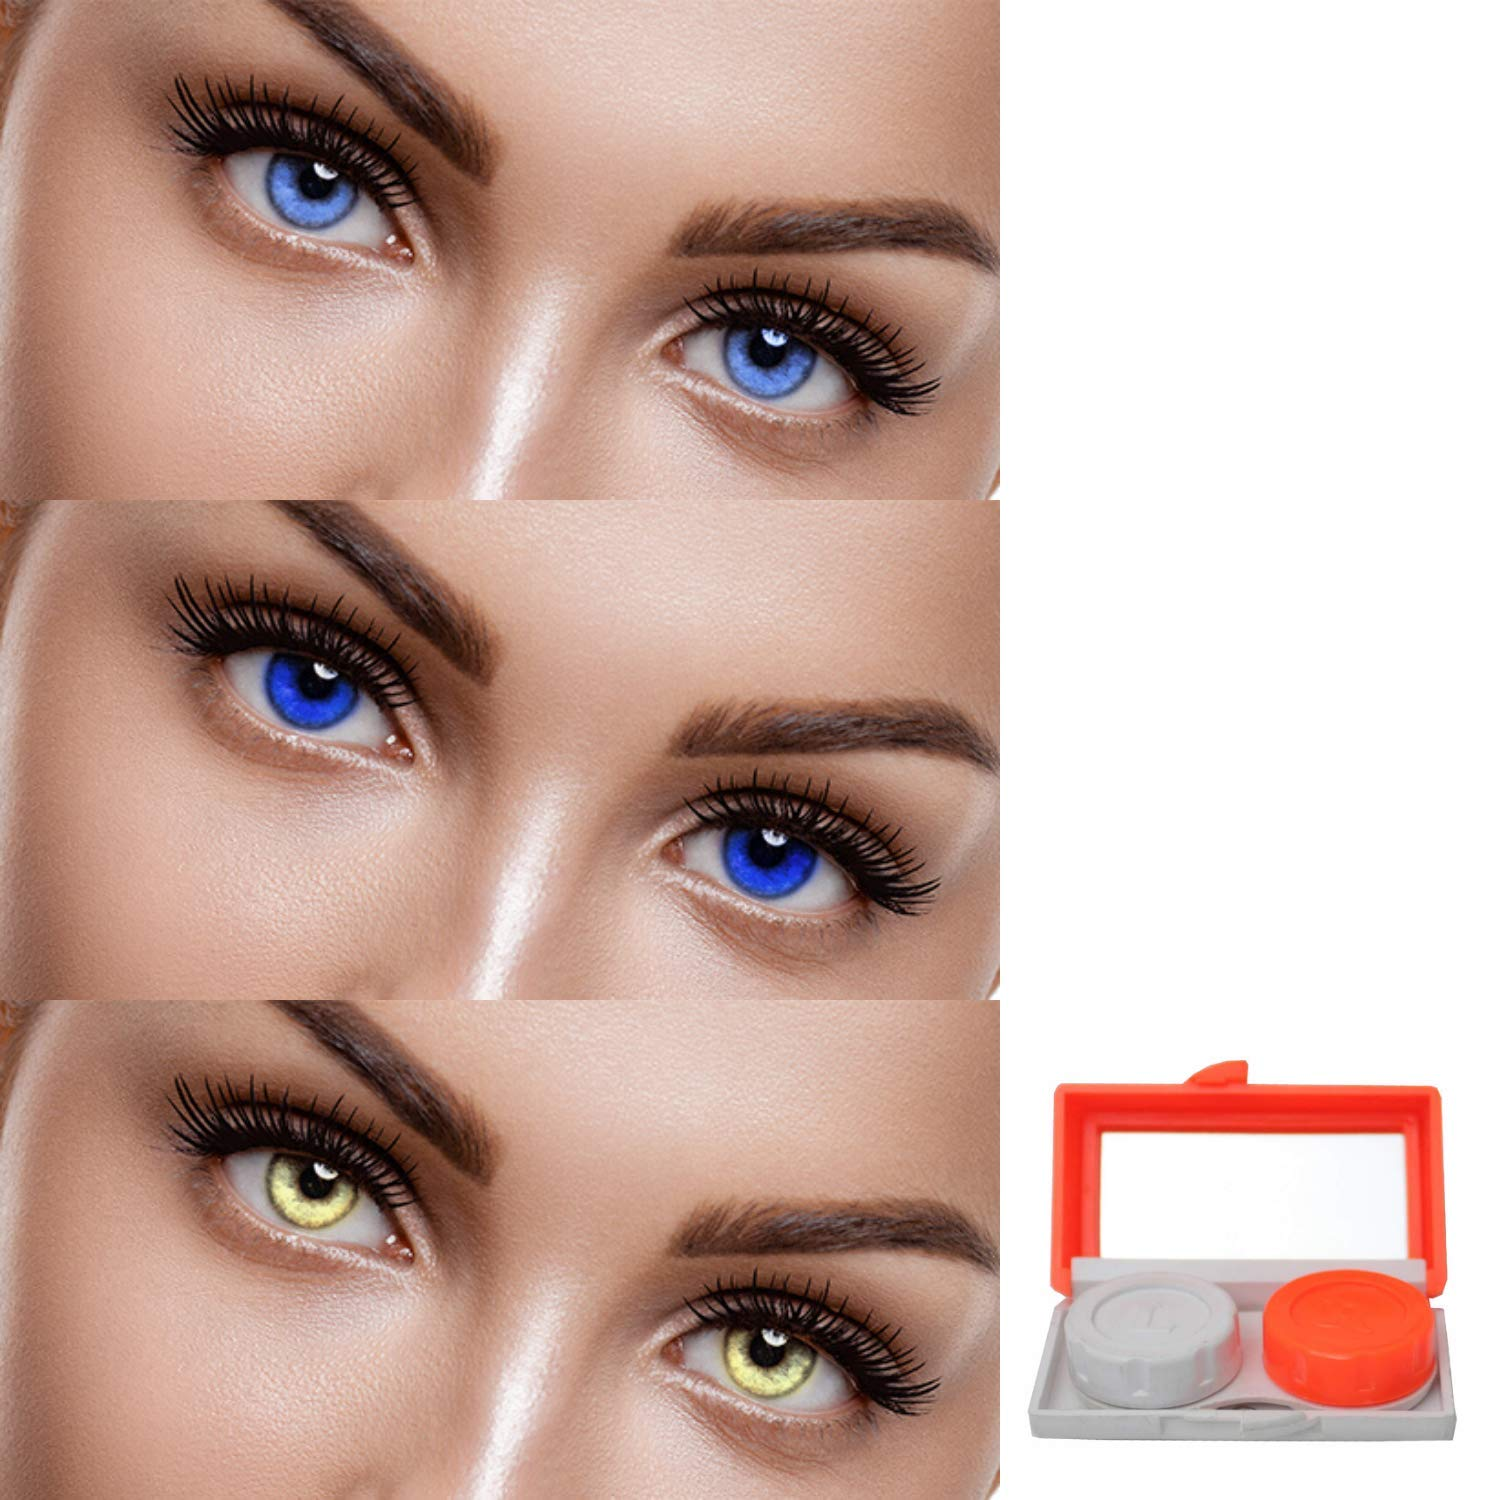 Buy Eycog 3 Pair Monthly Aqua Blue Gold Colored 0 Power Contact Lenses For Men And Women Eyes With Lens Travel Container Kit Online At Low Prices In India Amazon In